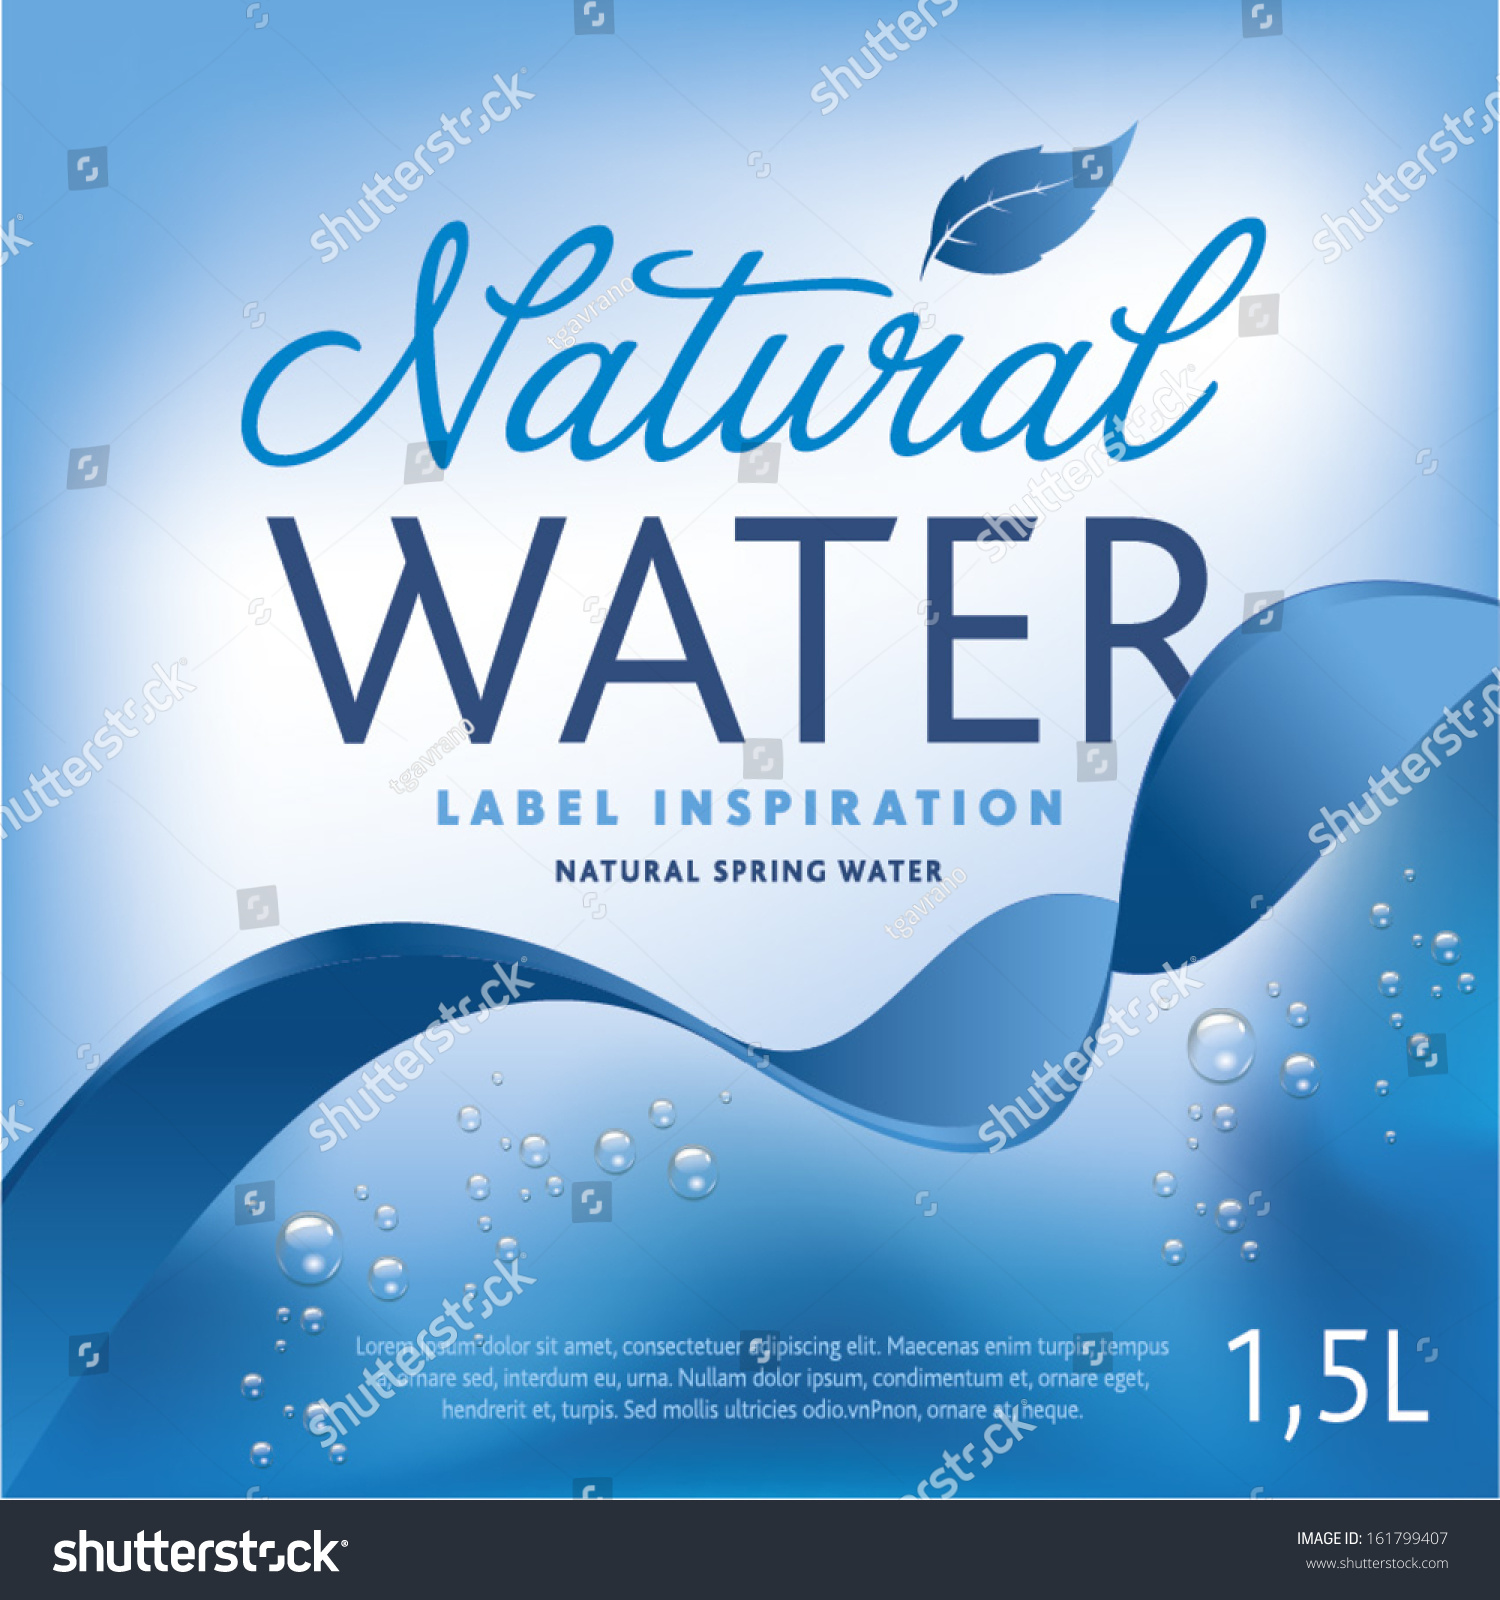 mineral water label template - water label on light blue background stock vector